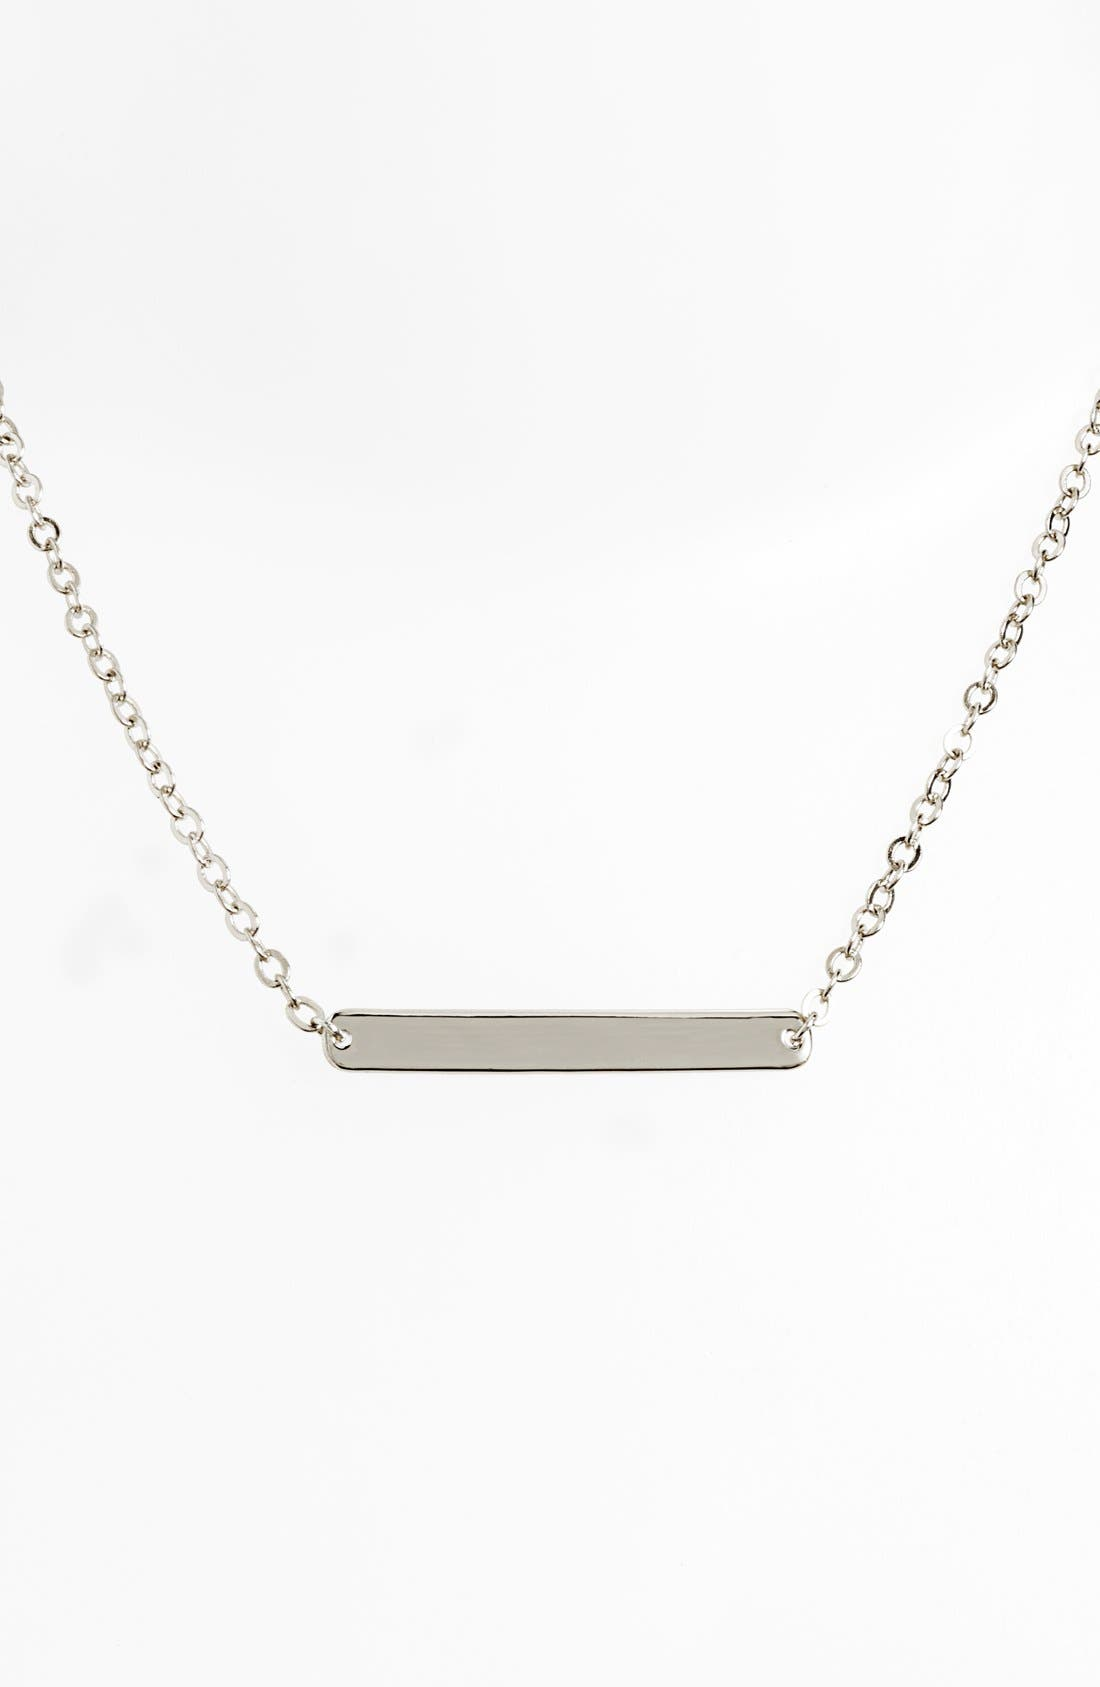 Bar Pendant Necklace,                             Alternate thumbnail 2, color,                             040